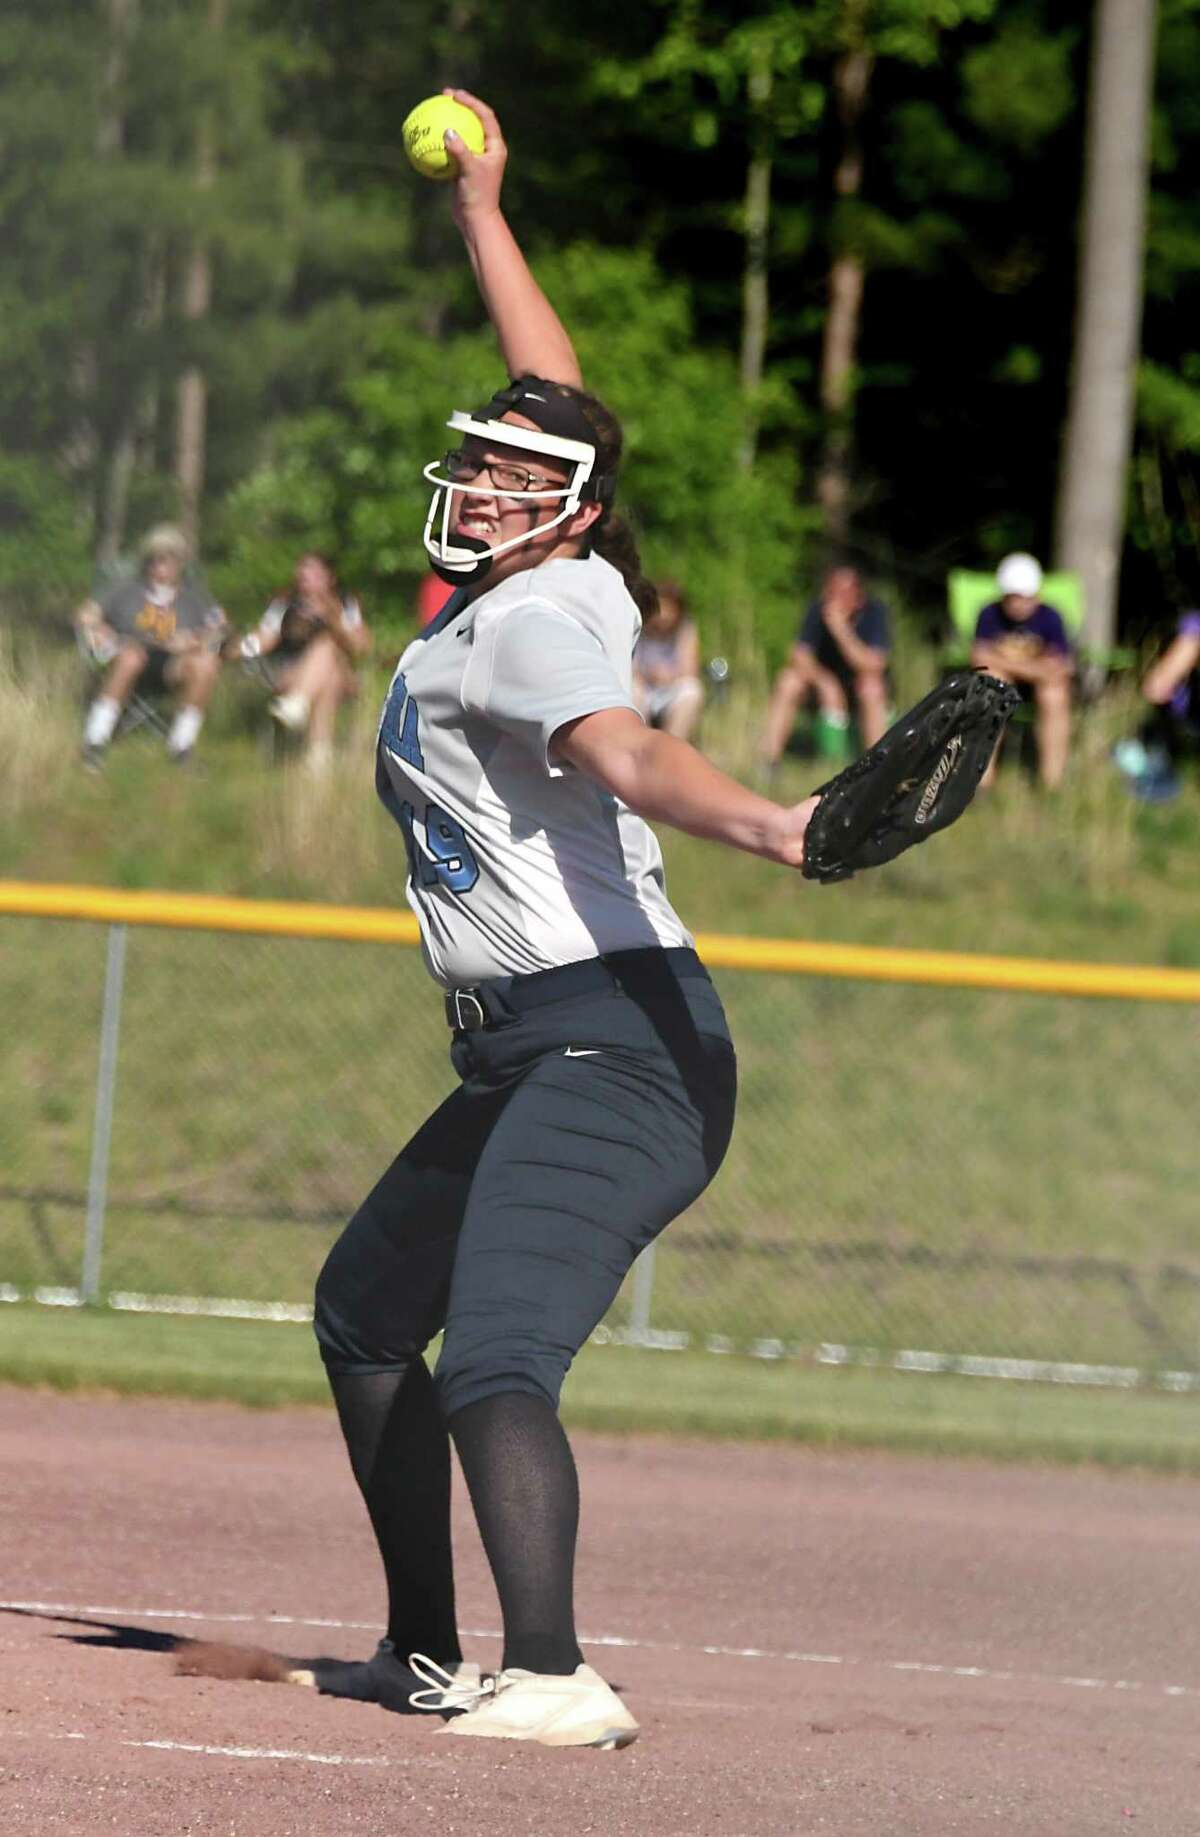 Columbia pitcher Jess Patterson throws the ball during the Class AA softball final against Ballston Spa at the Luther Forest Complex on Wednesday, May 29, 2018 in Malta N.Y. (Lori Van Buren/Times Union)